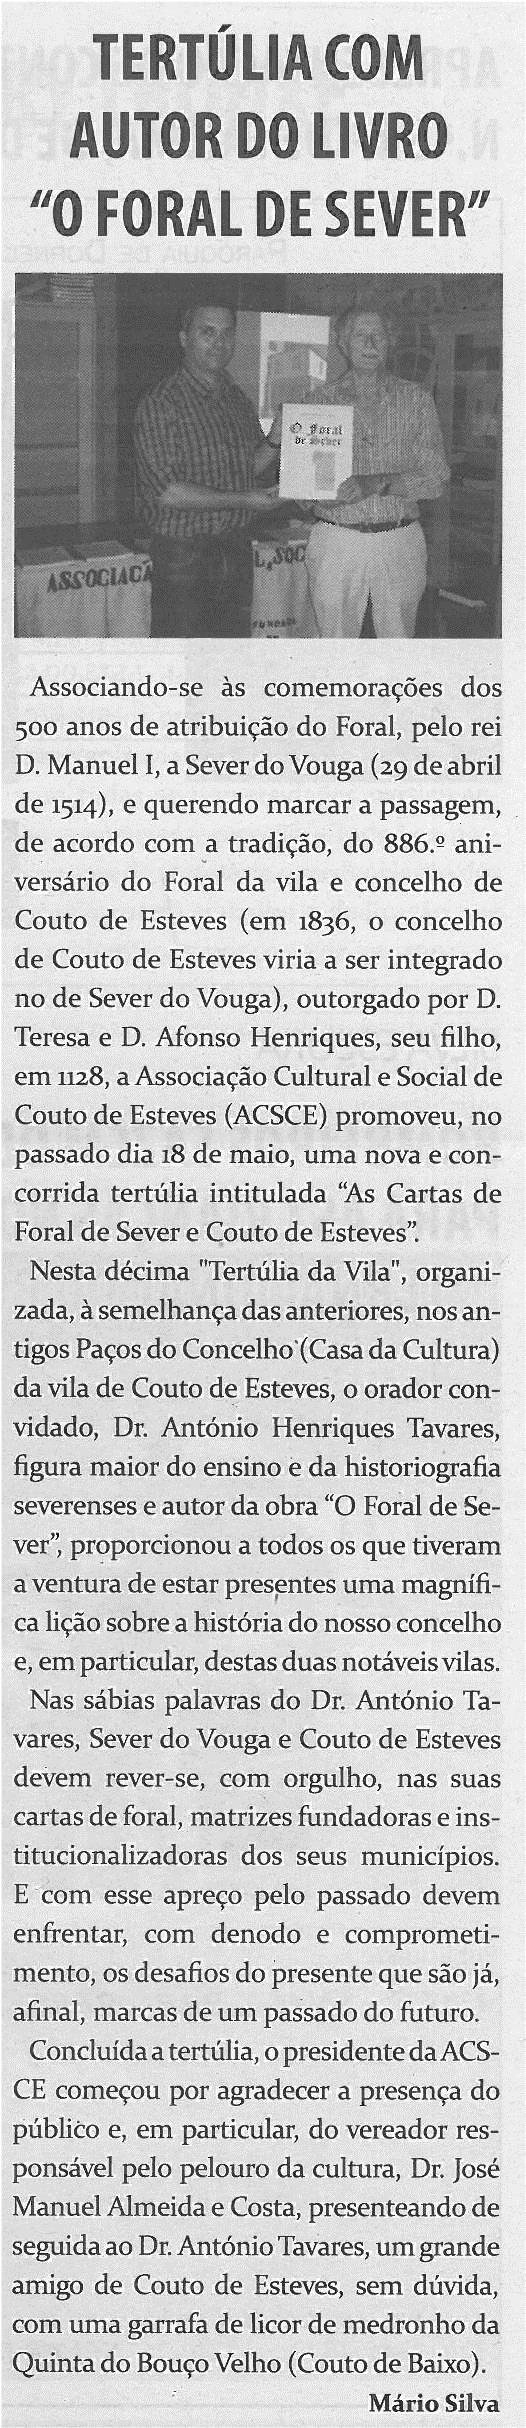 TV-jun14-p11-Tertúlia com autor do livro 'O Foral de Sever' - JPG